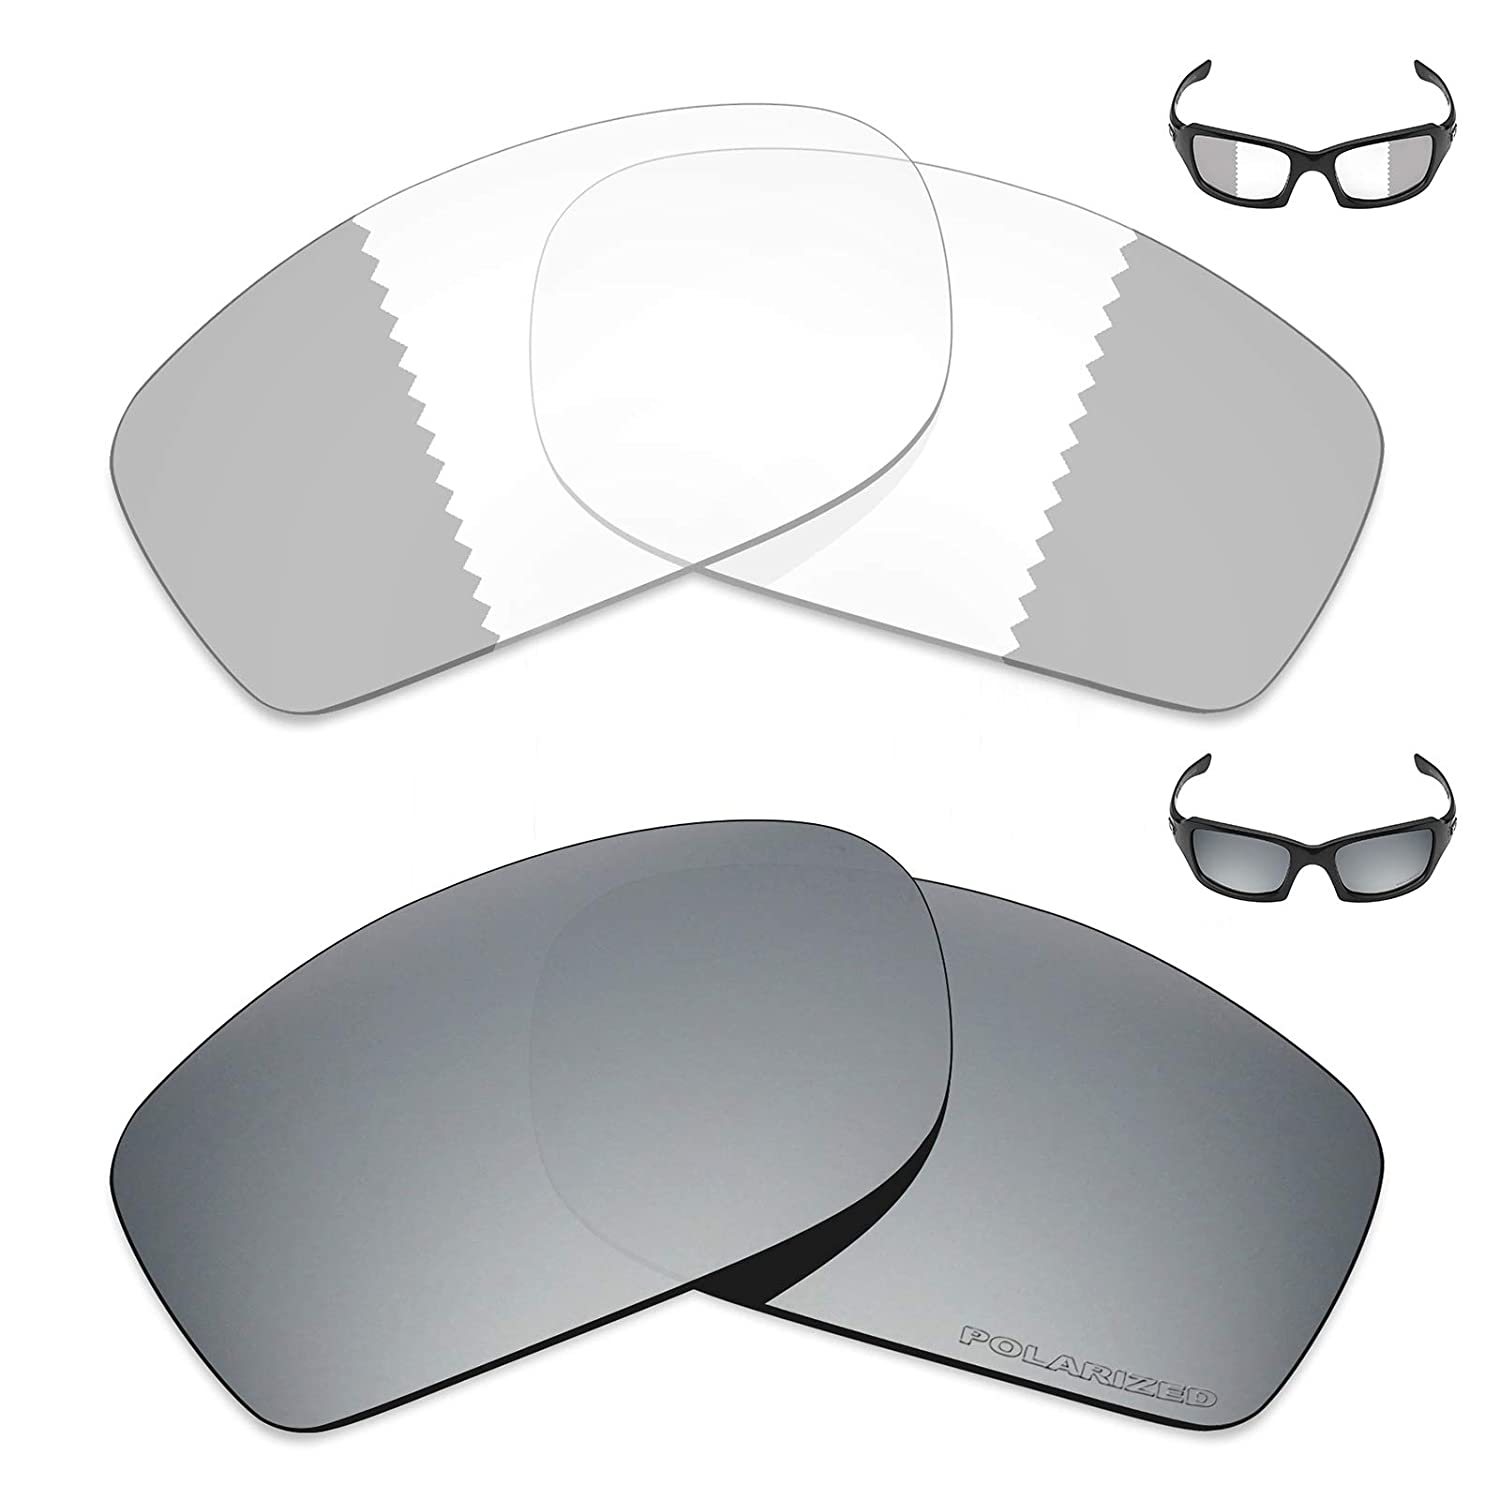 5068c35f93b Amazon.com  Mryok+ 2 Pair Replacement Lenses for Oakley Fives Squared  Sunglass - Eclipse Grey Photochromic Silver Titanium  Sports   Outdoors